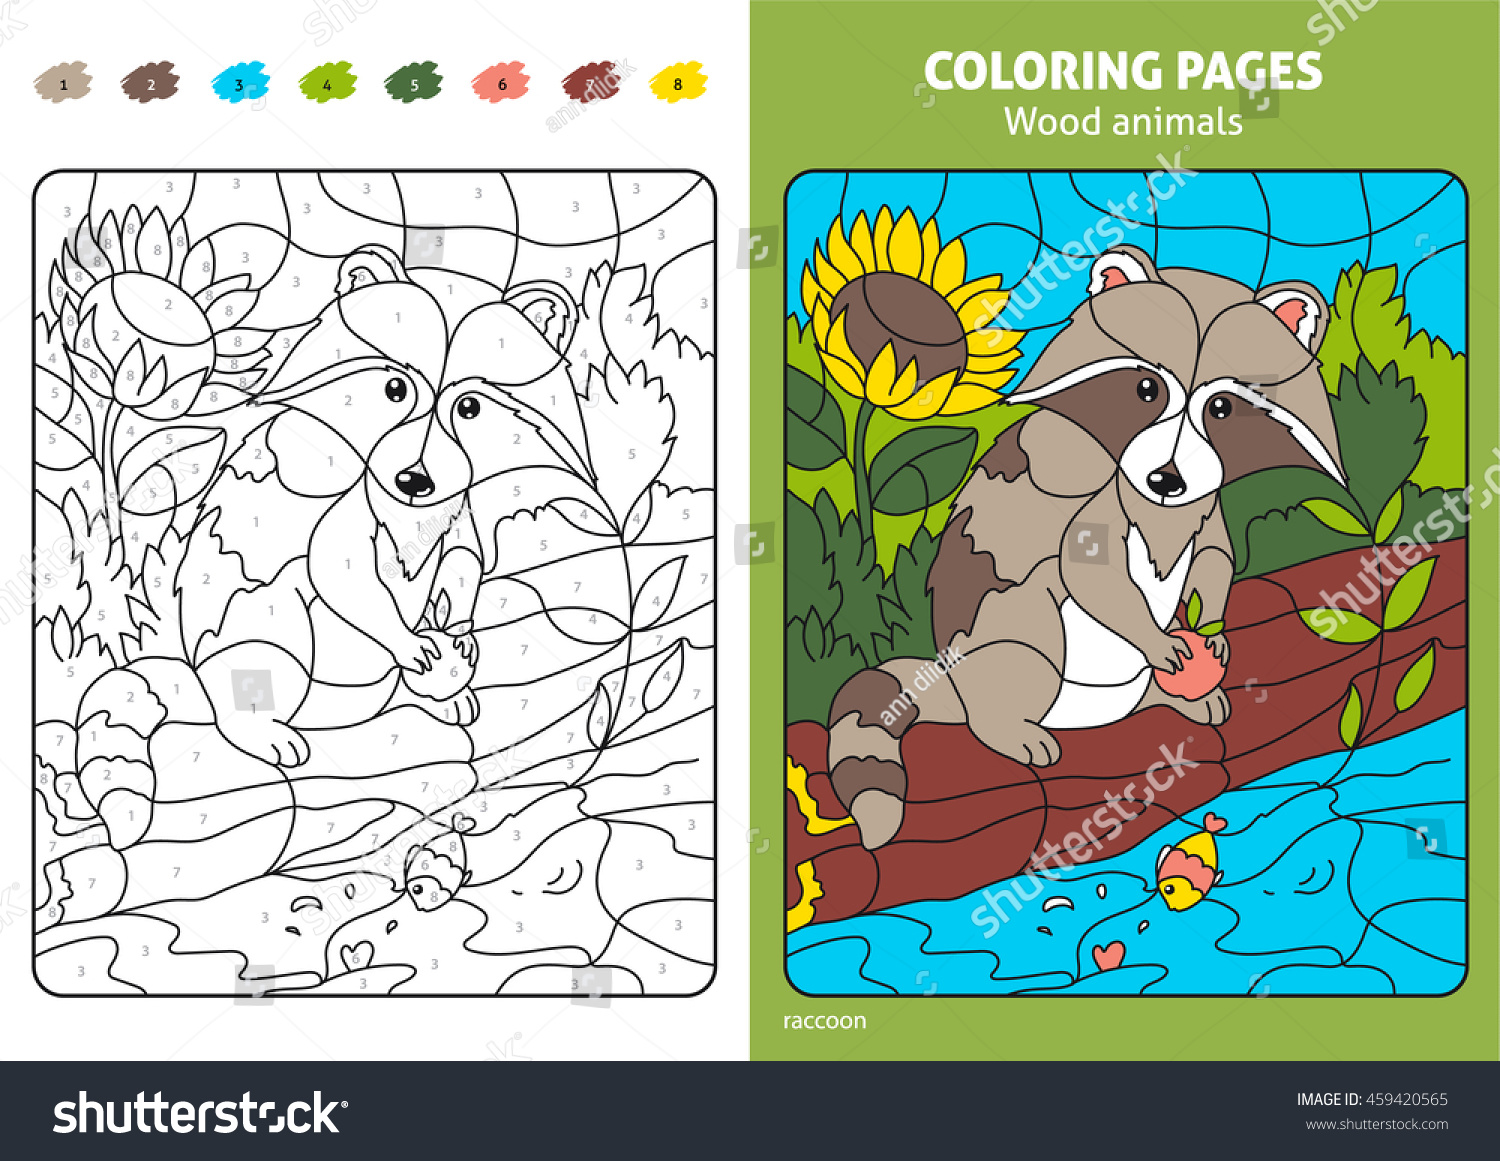 Wood Animals Coloring Page Kids Raccoon Stock Vector (Royalty Free ...